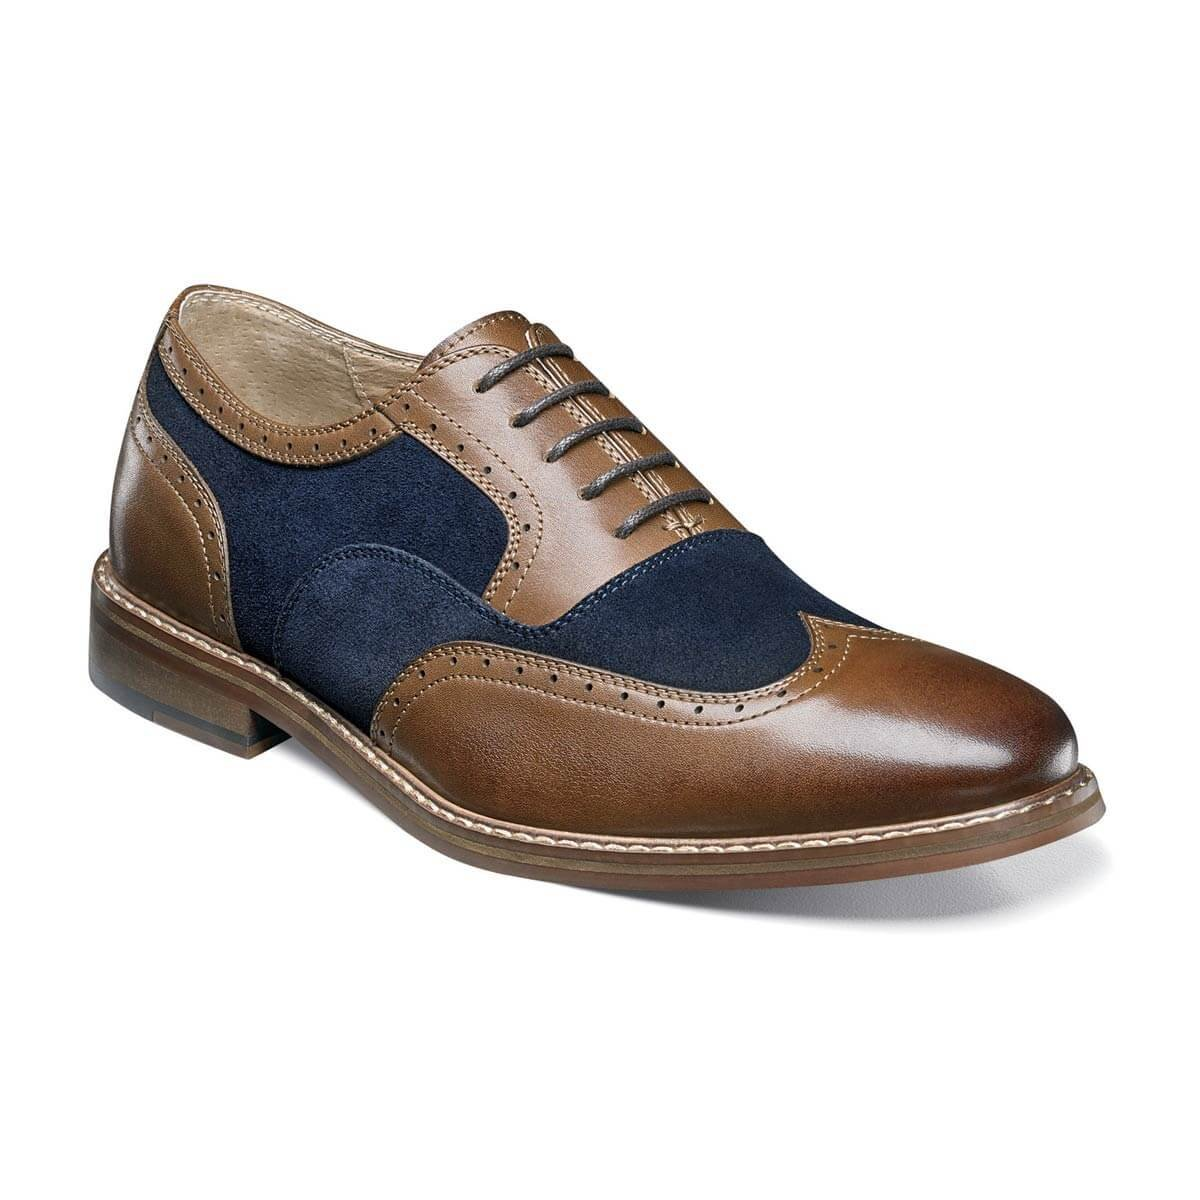 Stacy Adams Mens Ansley Wingtip Oxford (25130), Brown and Navy, 10 M (25130-989)